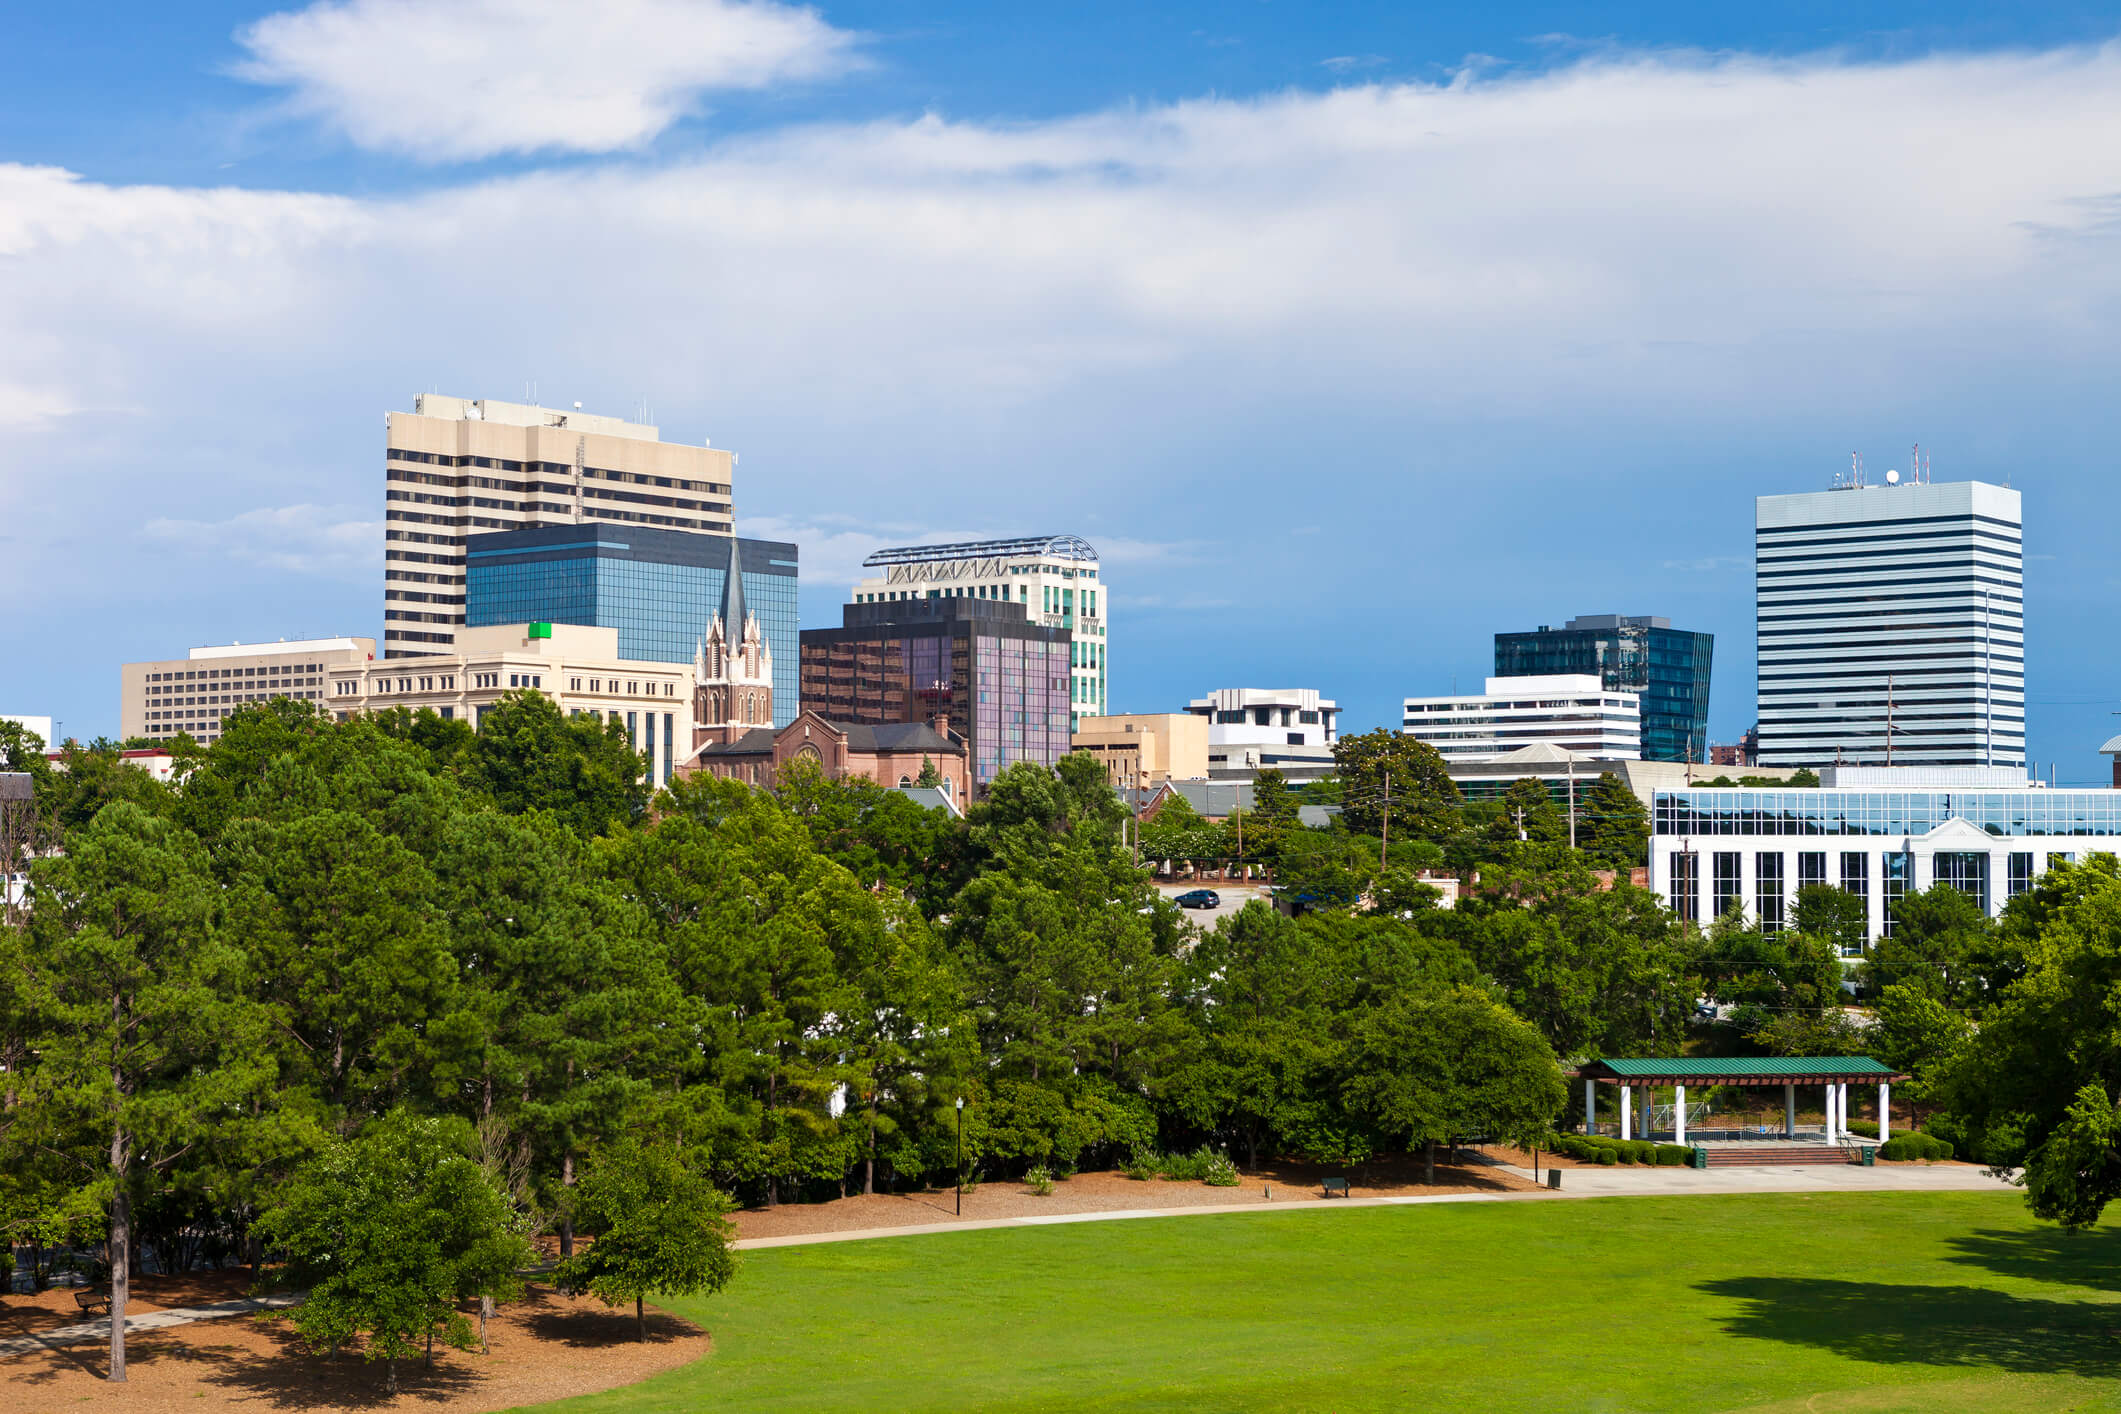 Photo of the Columbia South Carolina skyline showing all the buildings and skyrises on a nice summer day